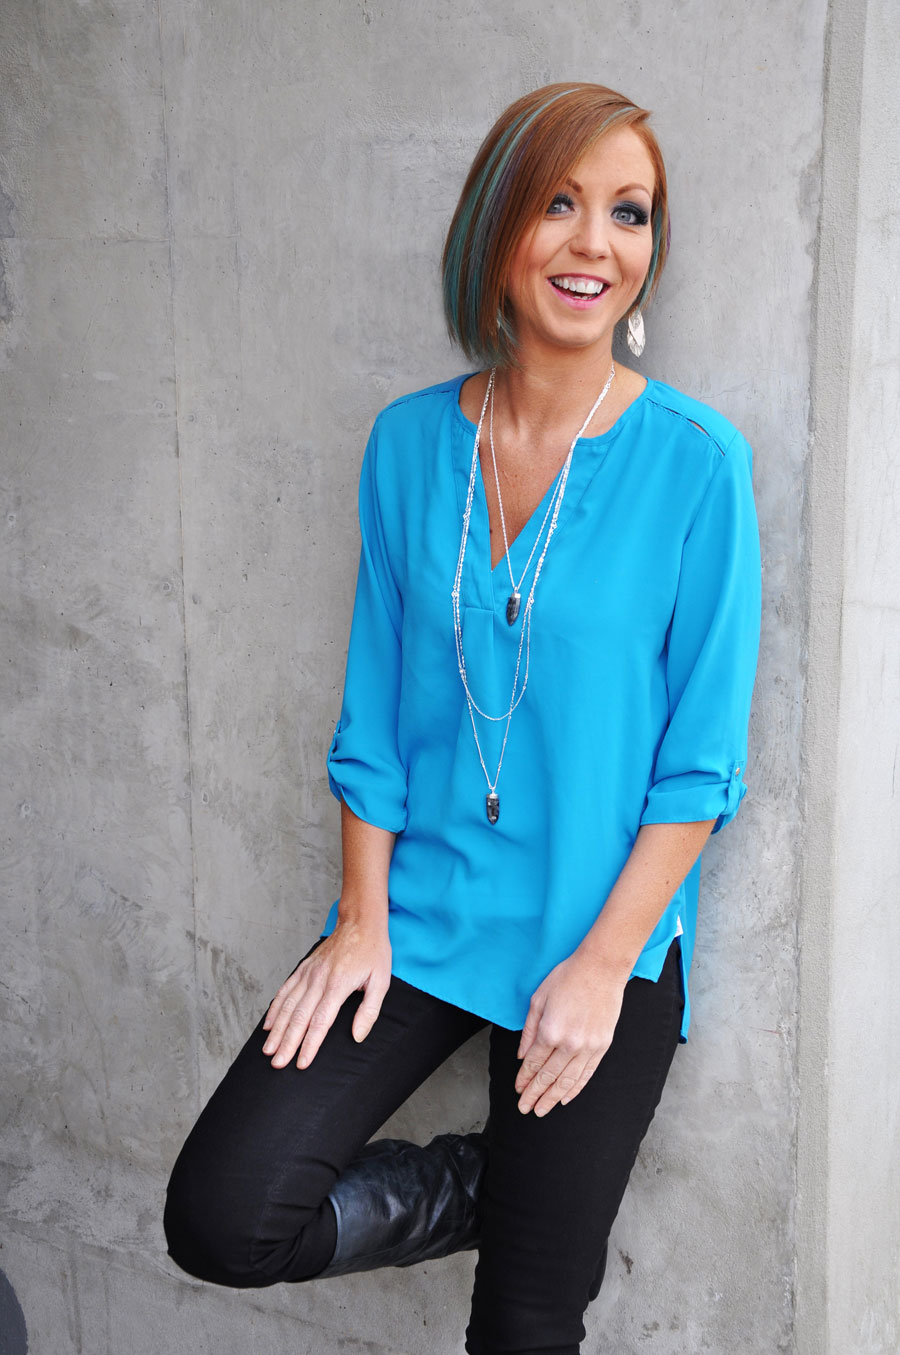 woman in a bright blue shirt and black pants leaning against a grey wall